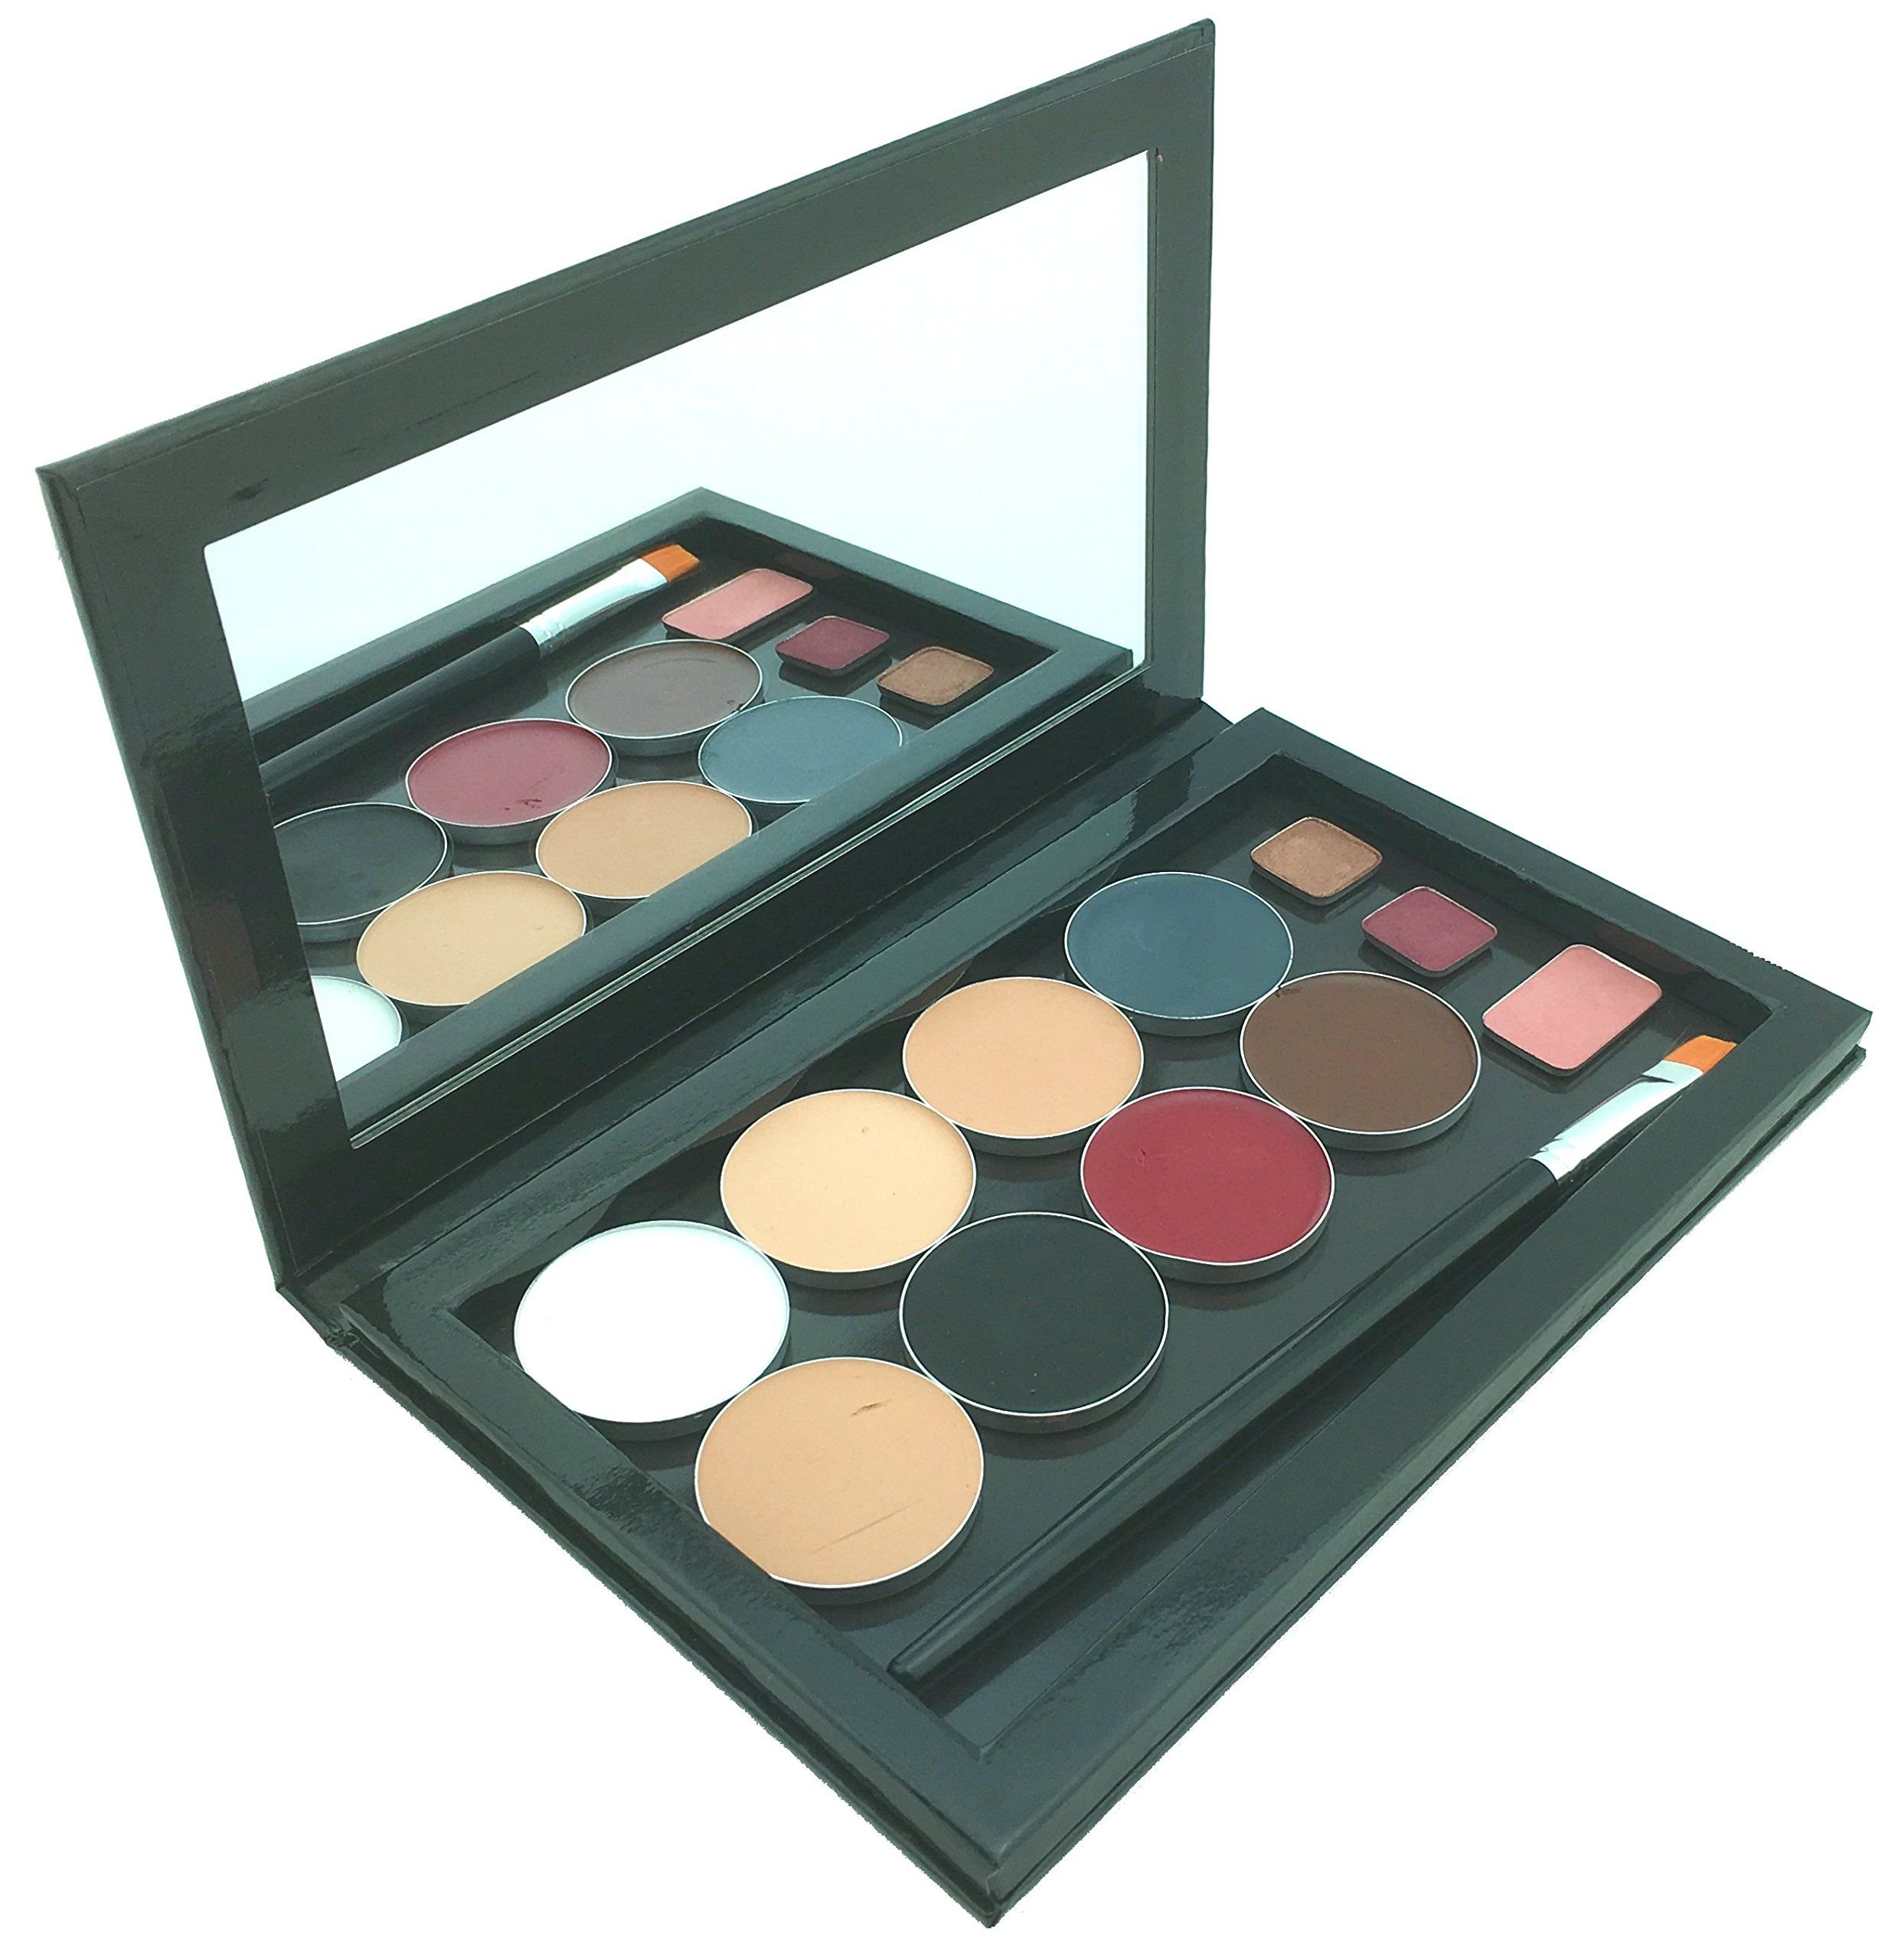 Large Empty Makeup Palette with Mirror and 20